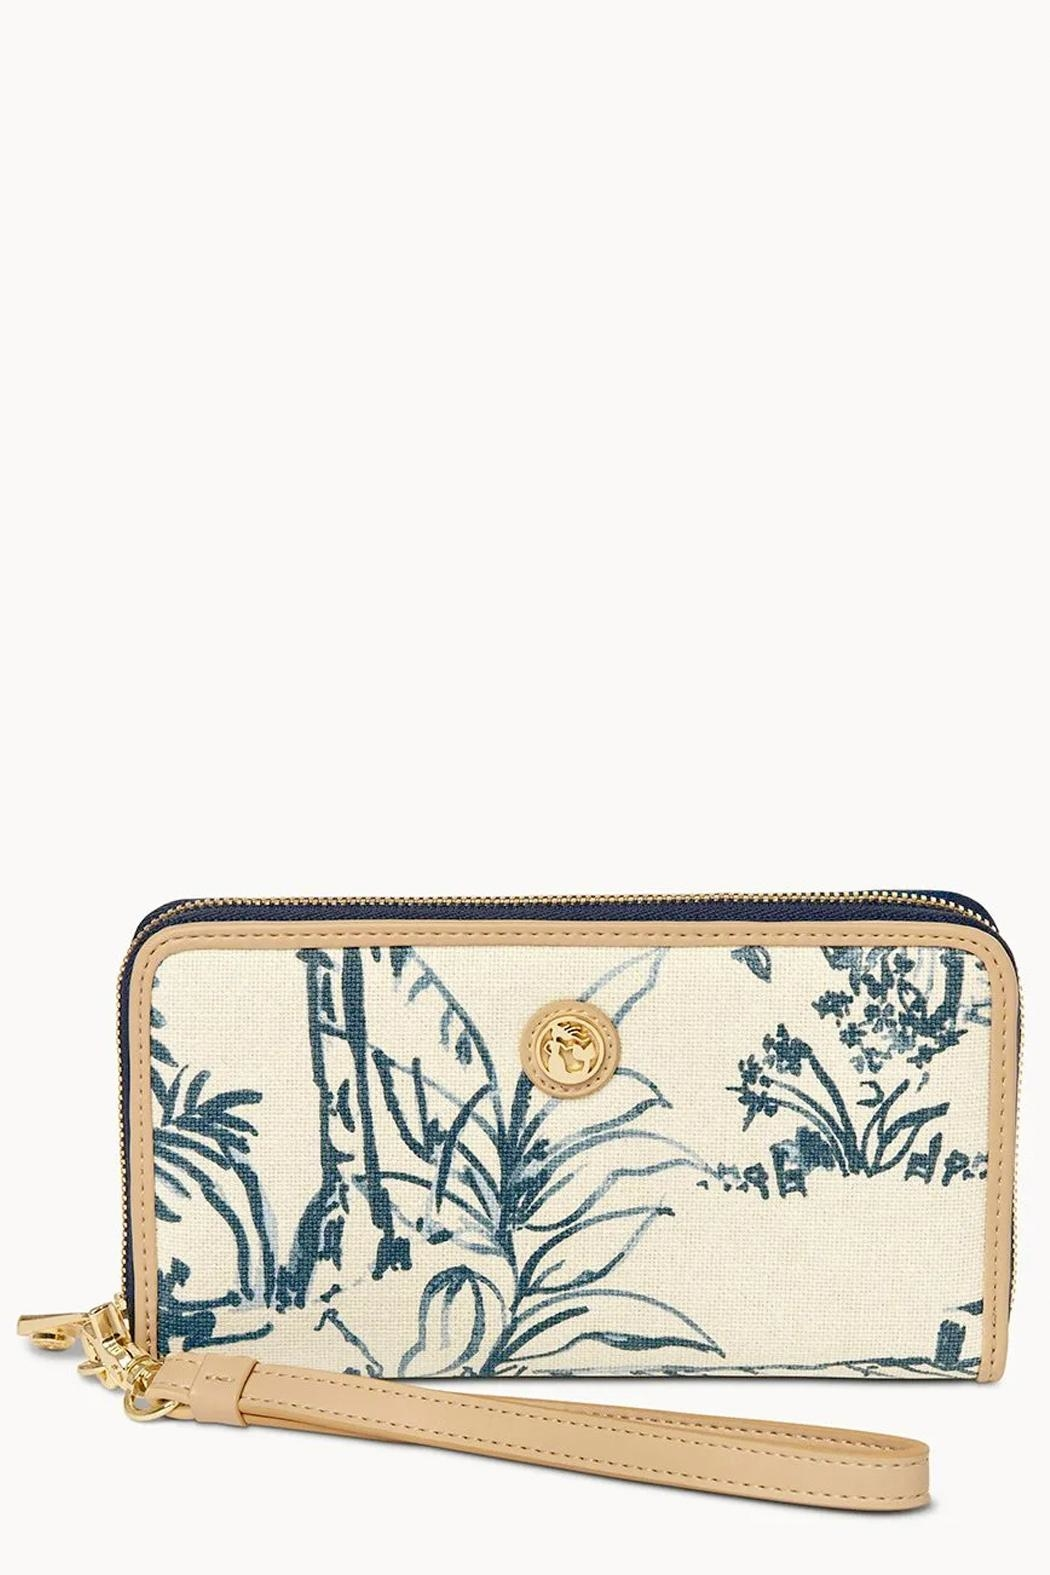 Spartina 449 Daise-Seascape 449 Wallet - Main Image